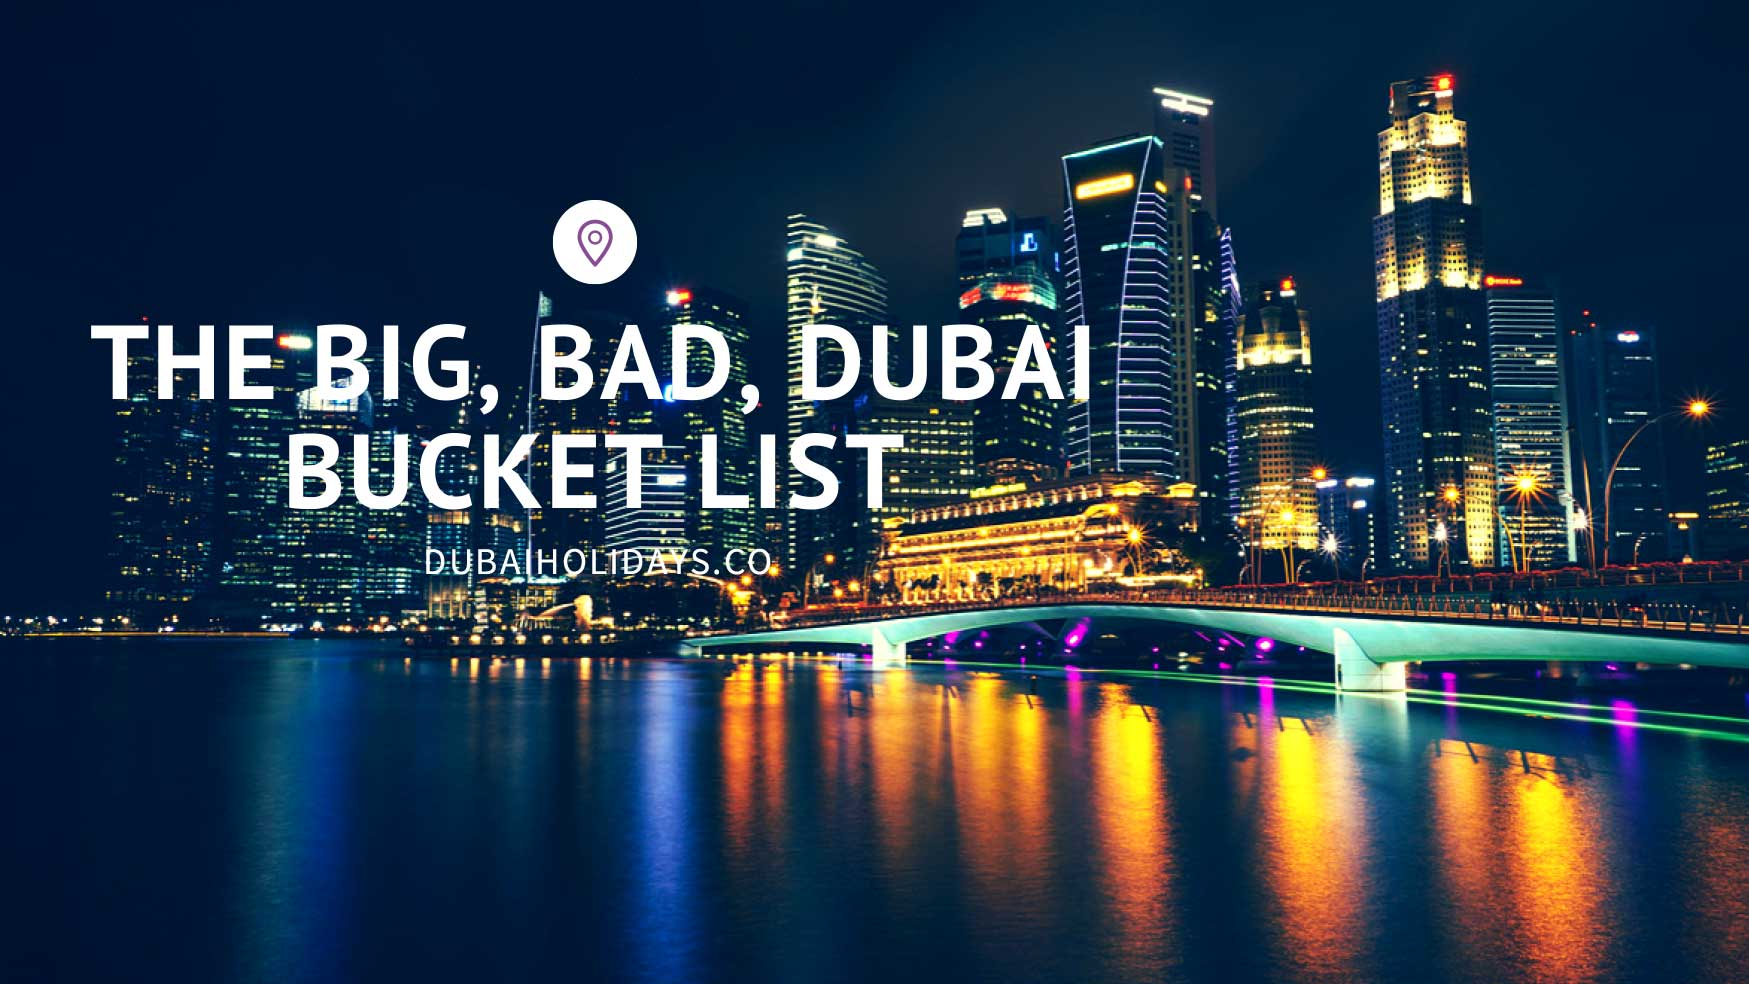 THE BIG, BAD, DUBAI BUCKET LIST